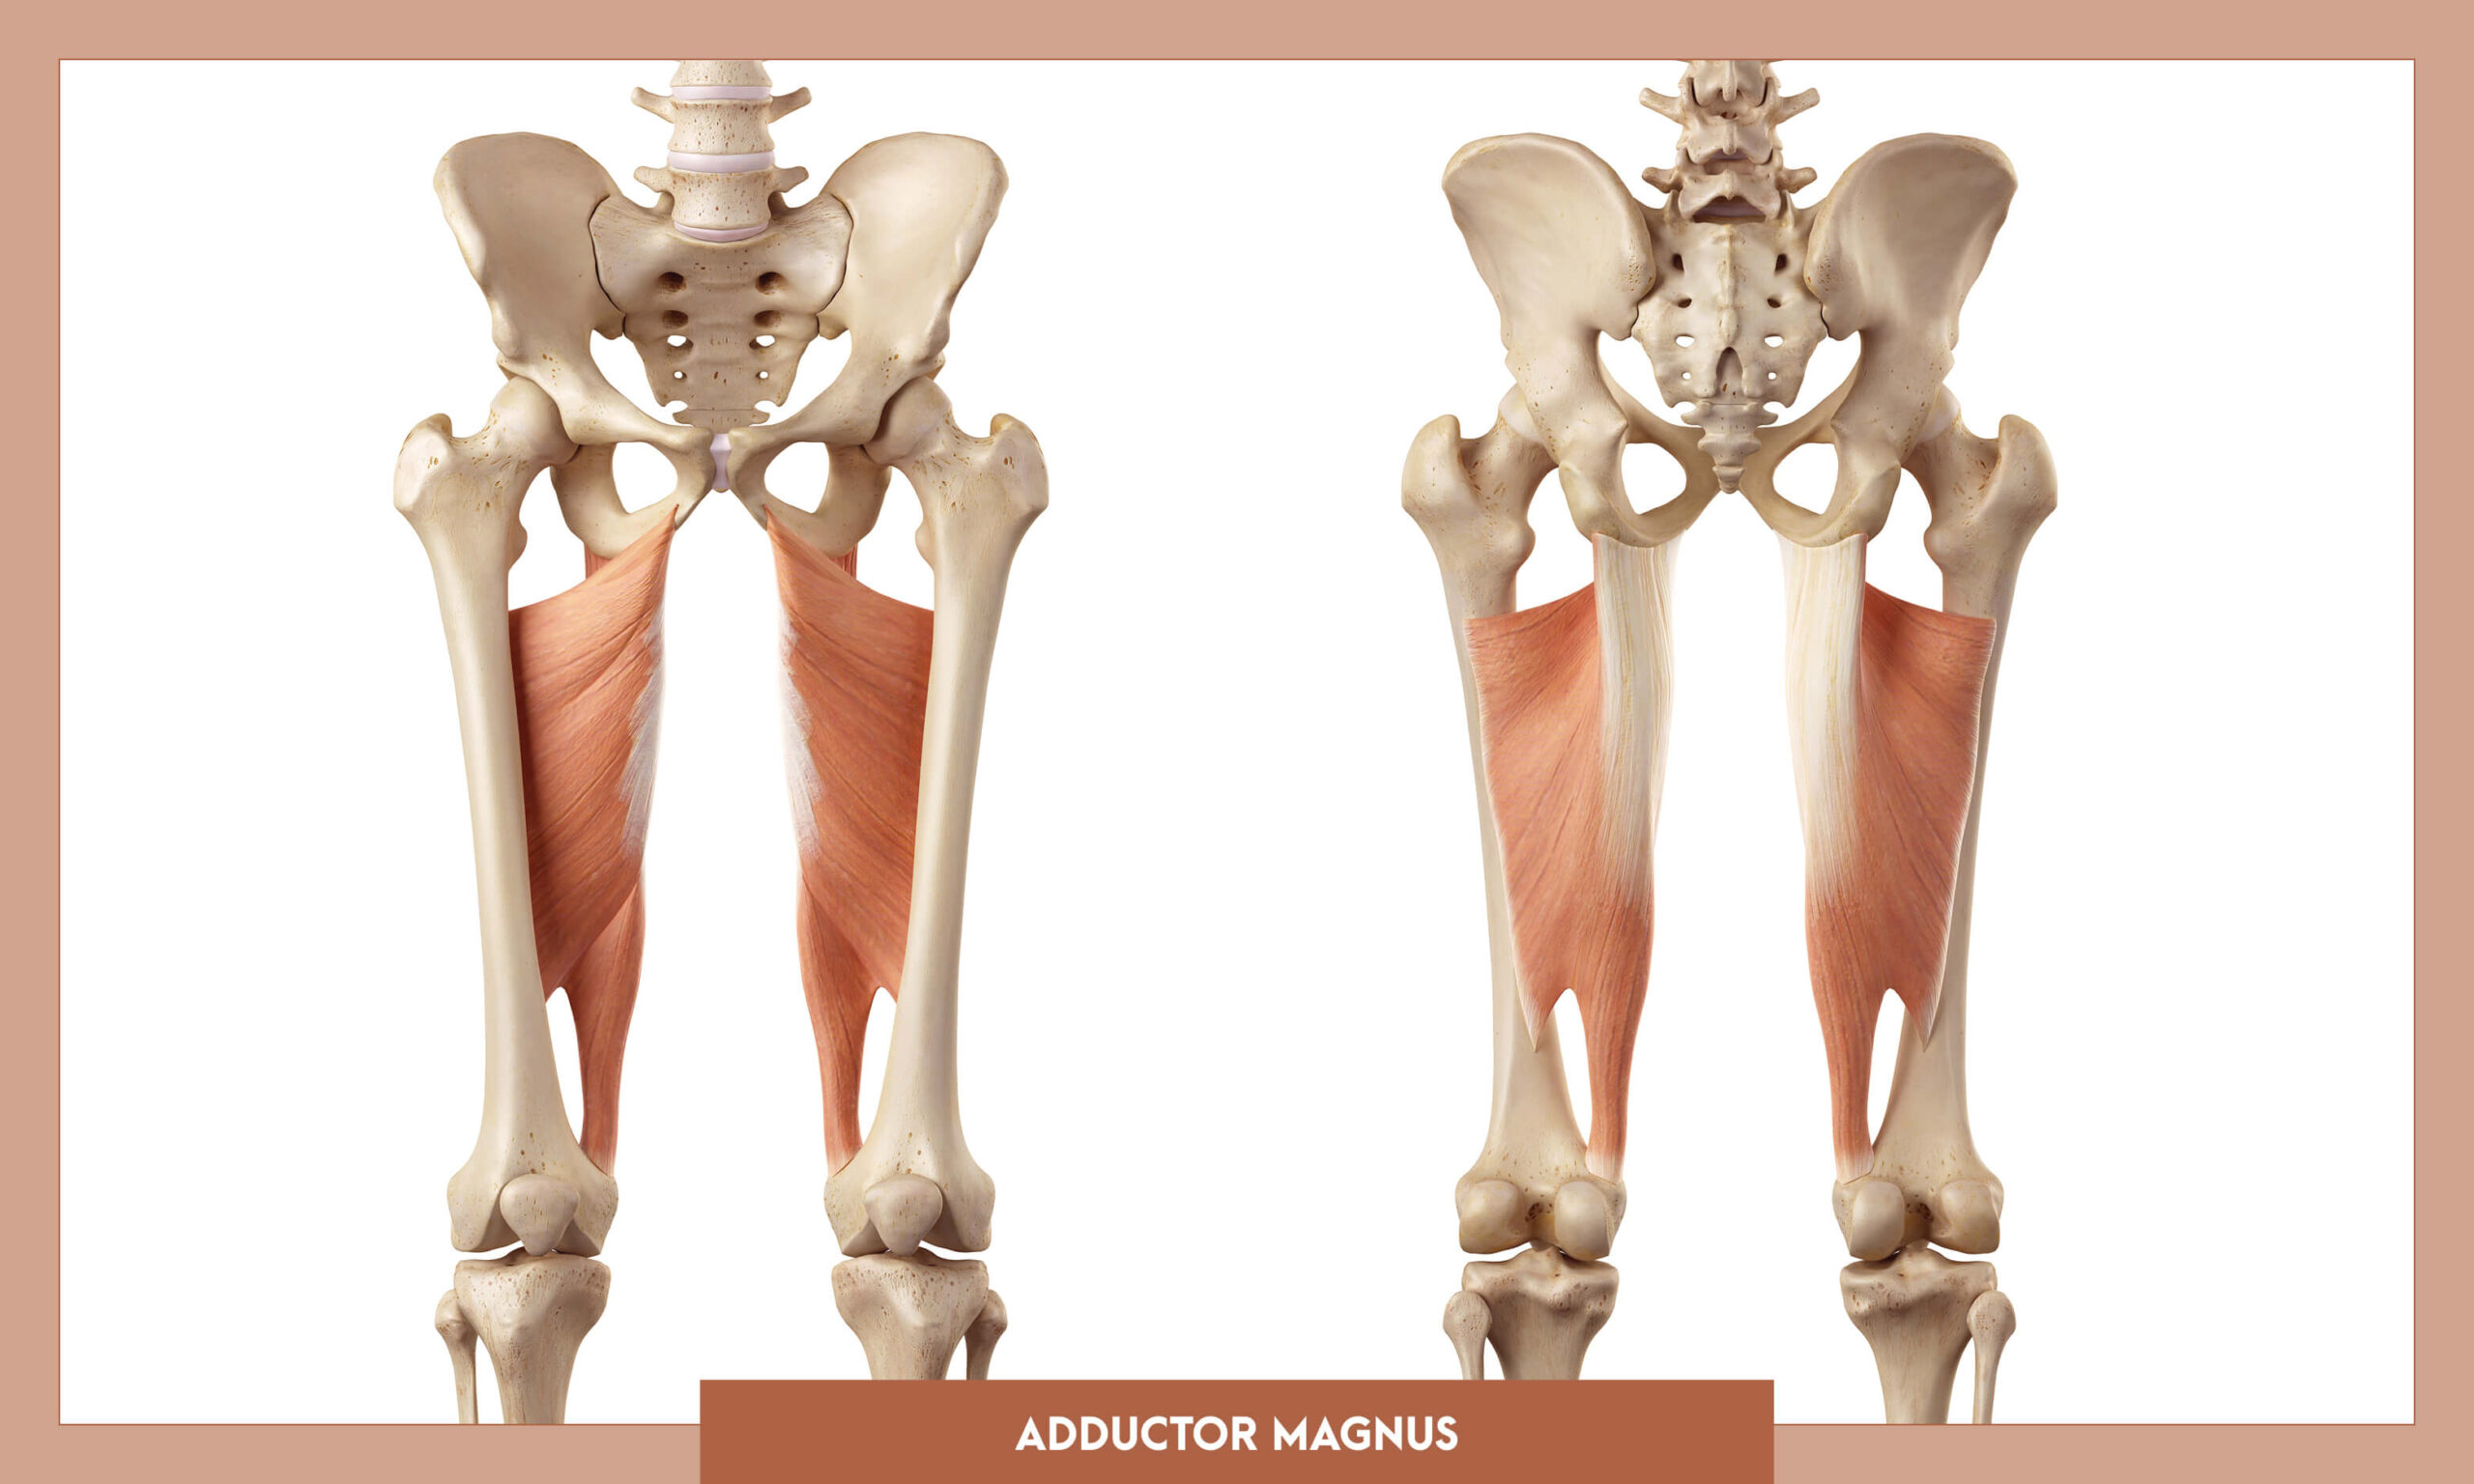 Muscles of thee Lower Limb - Adductor magnus